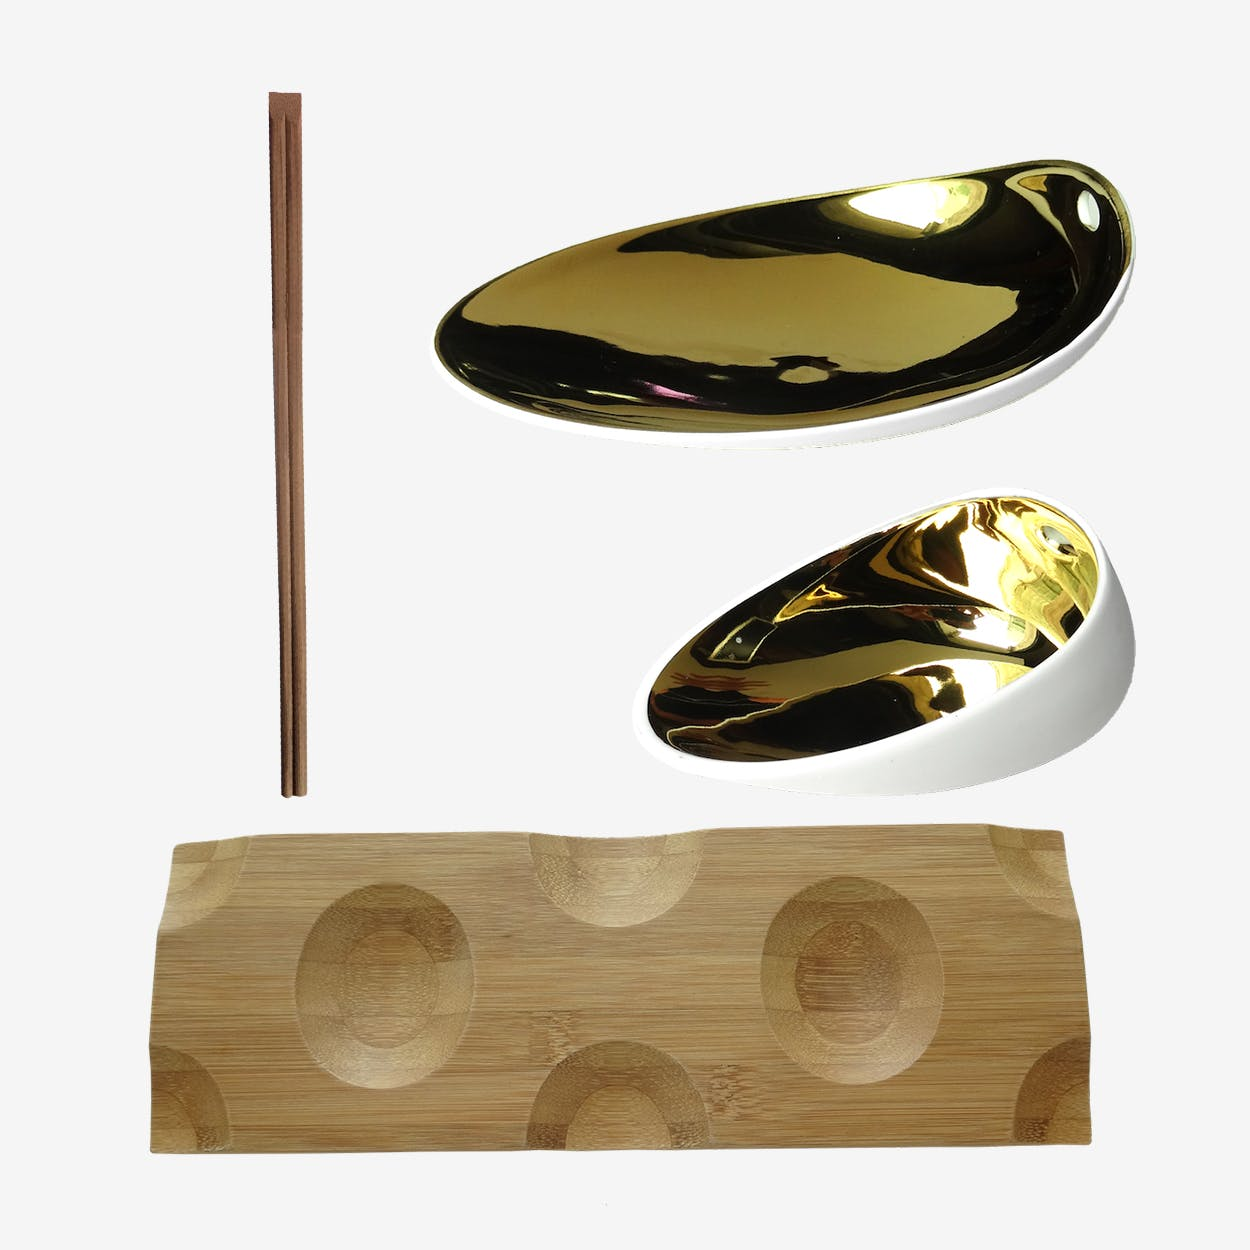 Jomon Sushi Pack in Gold